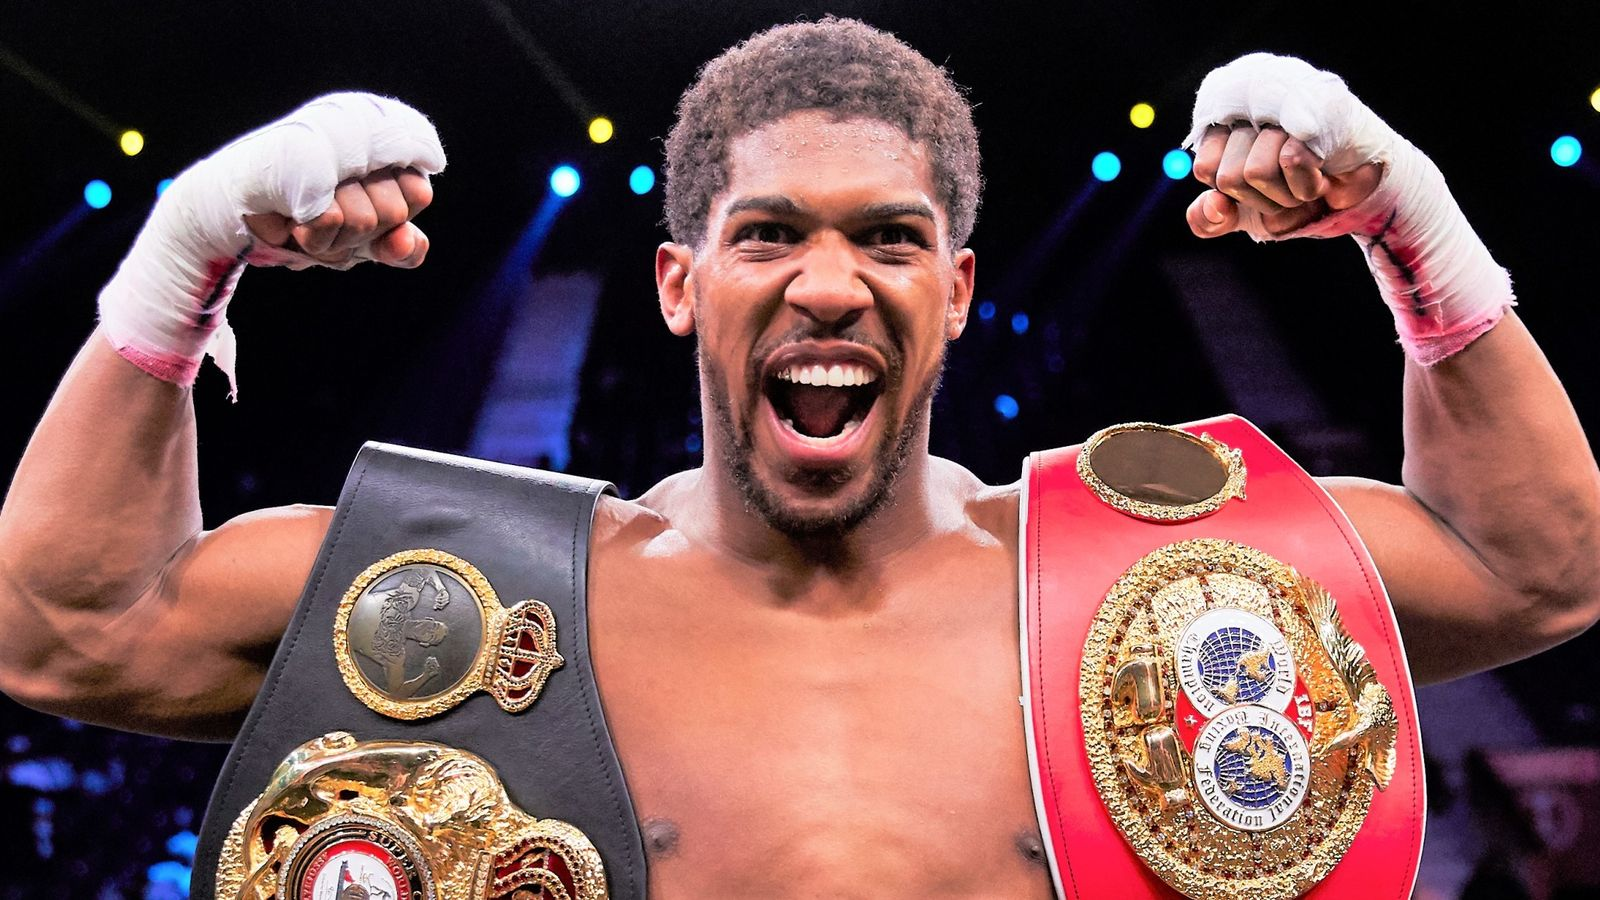 """Anthony Joshua Receives """"Huge Site Offer"""" to Face Deontay Wilder-Tyson Fury Winner in Saudi Arabia 